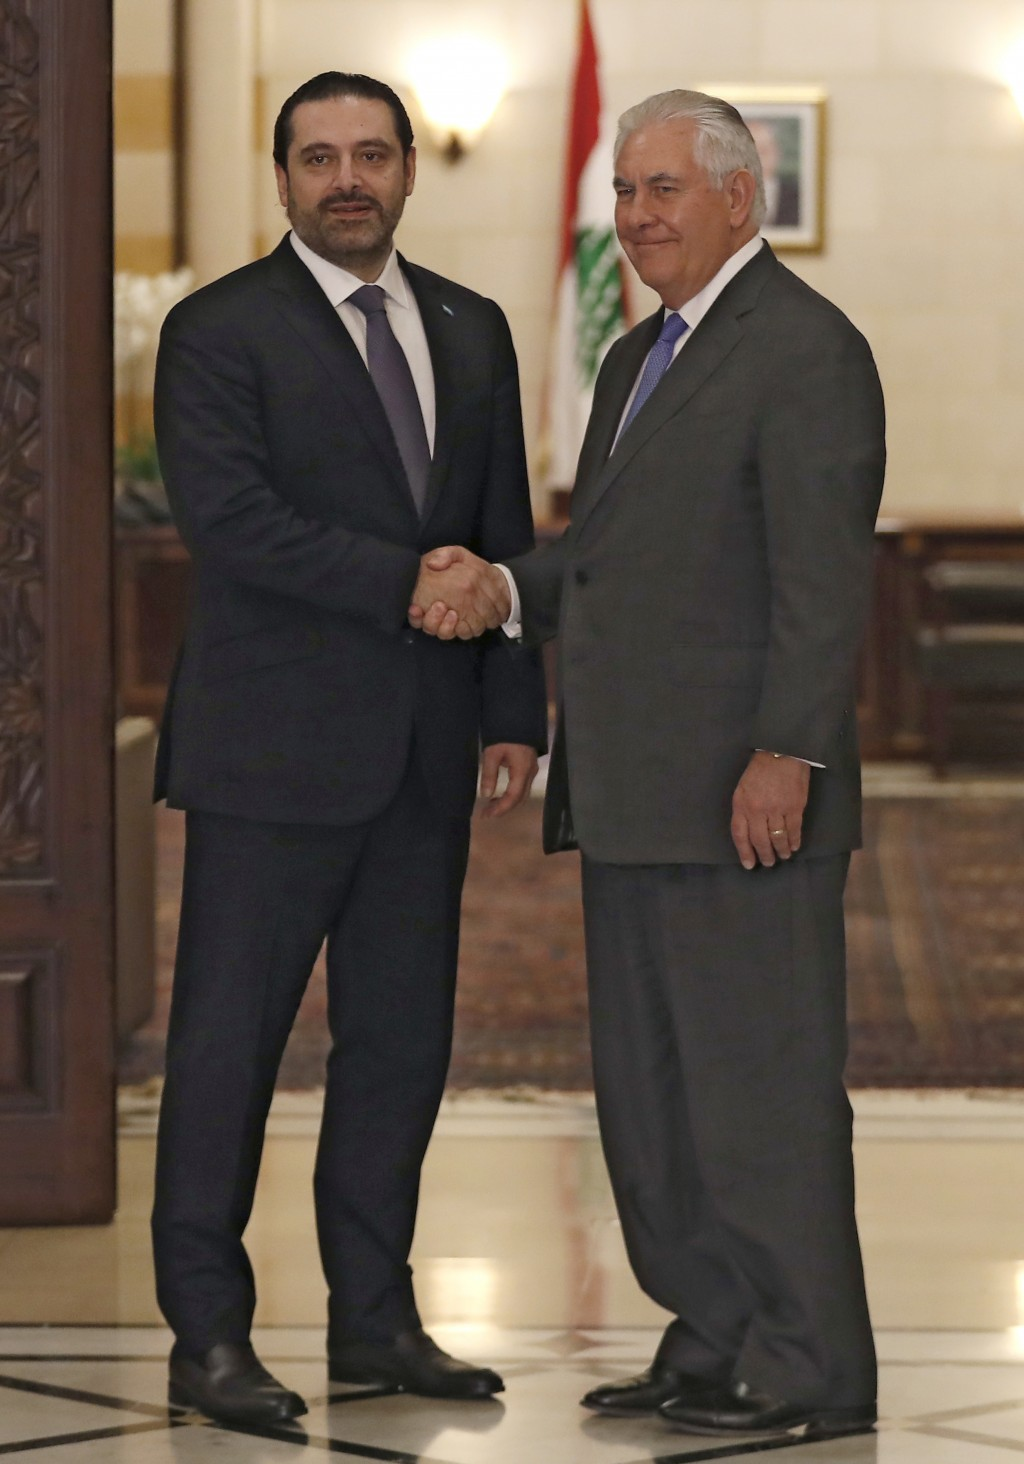 Lebanese Prime Minister Saad Hariri, left, shakes hands with U.S. Secretary of State Rex Tillerson, right, at the Government House, in Beirut, Lebanon